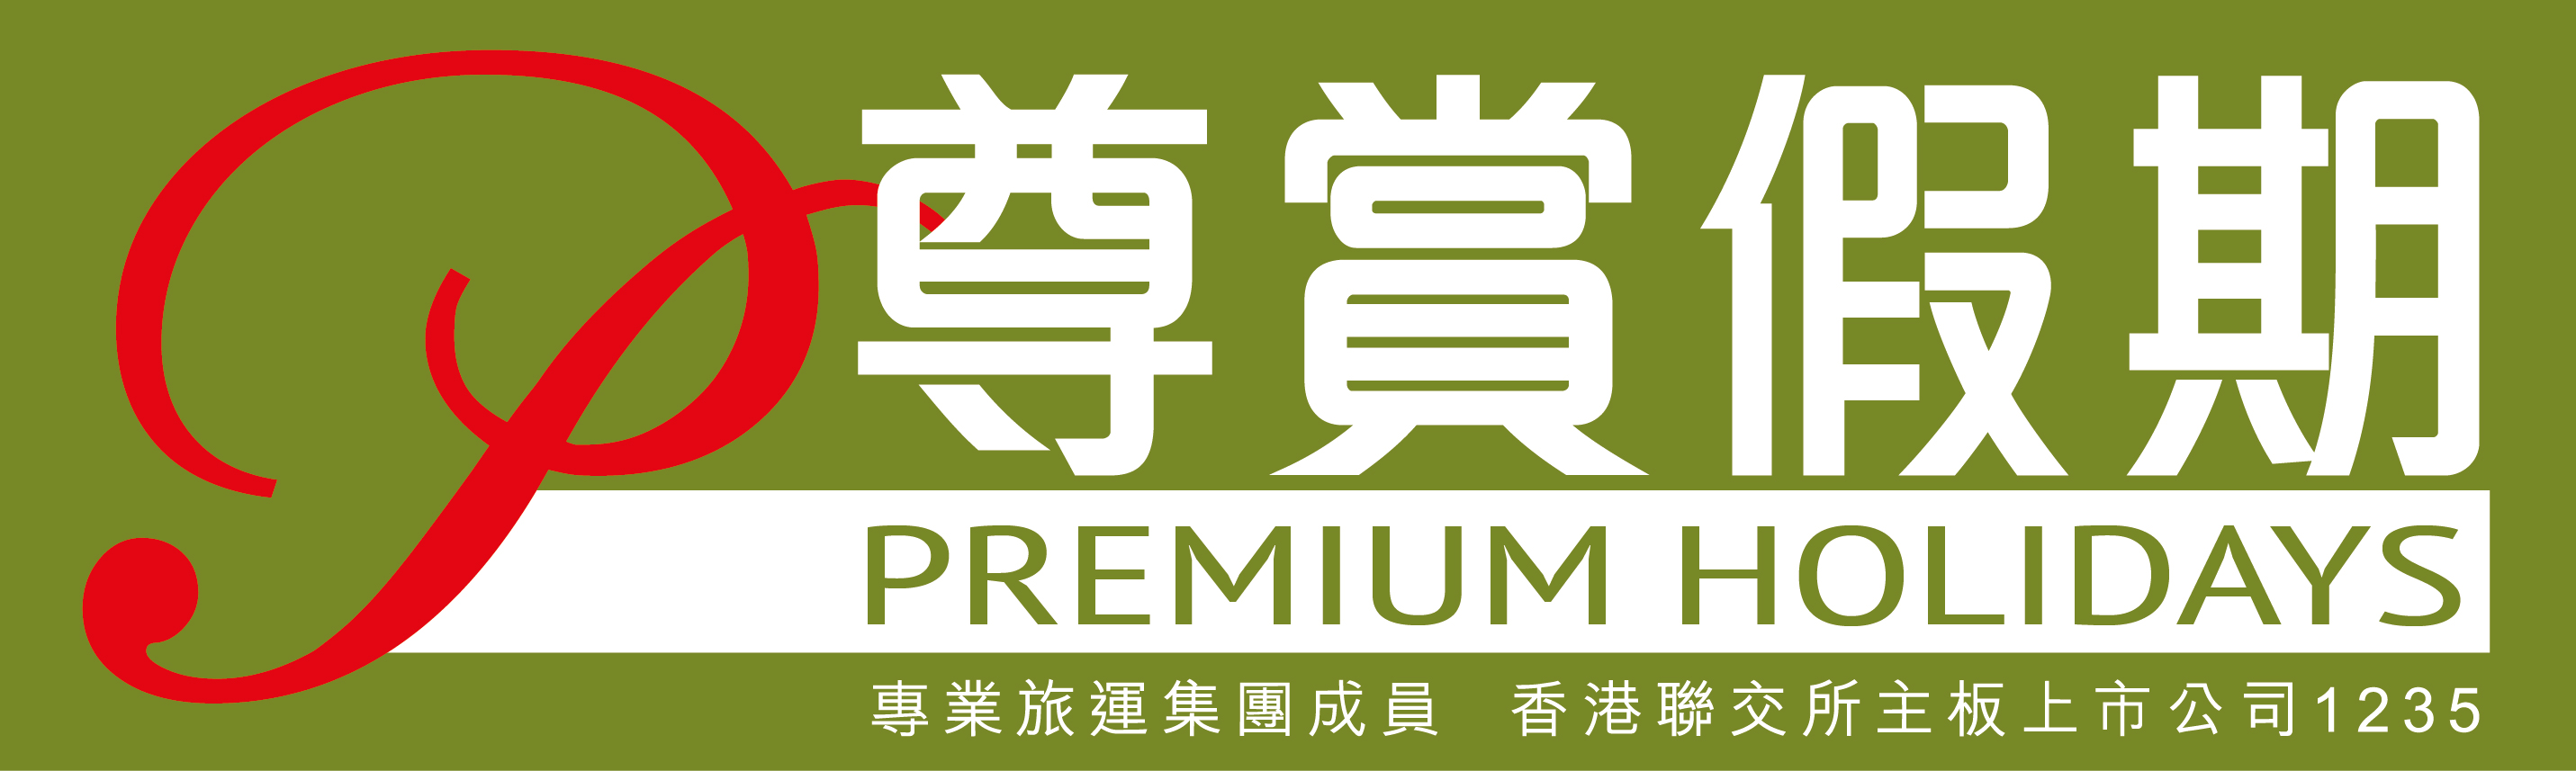 http://images.getcardable.com/hk/images/es/premium-holidays-promotions.jpg